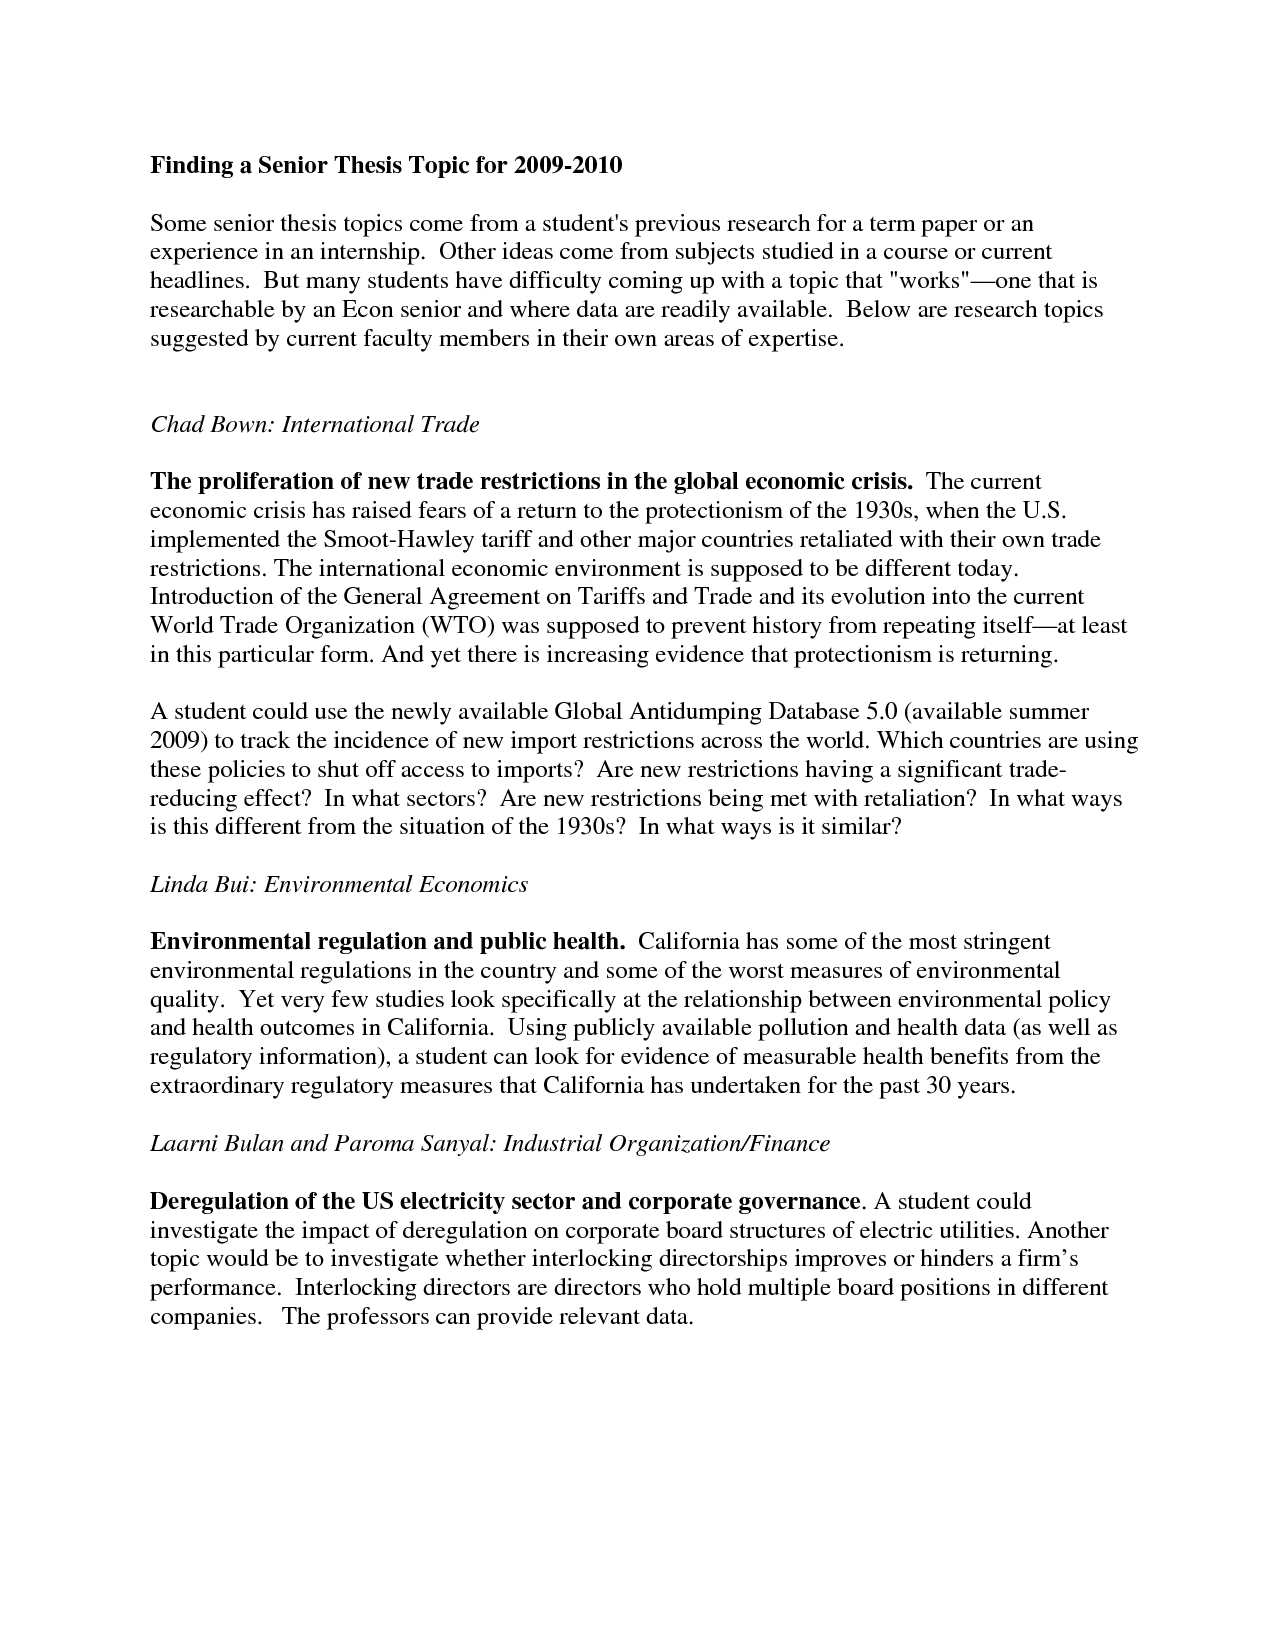 007 Interesting Topics For Research Paper High School Frightening A Students Argumentative Full